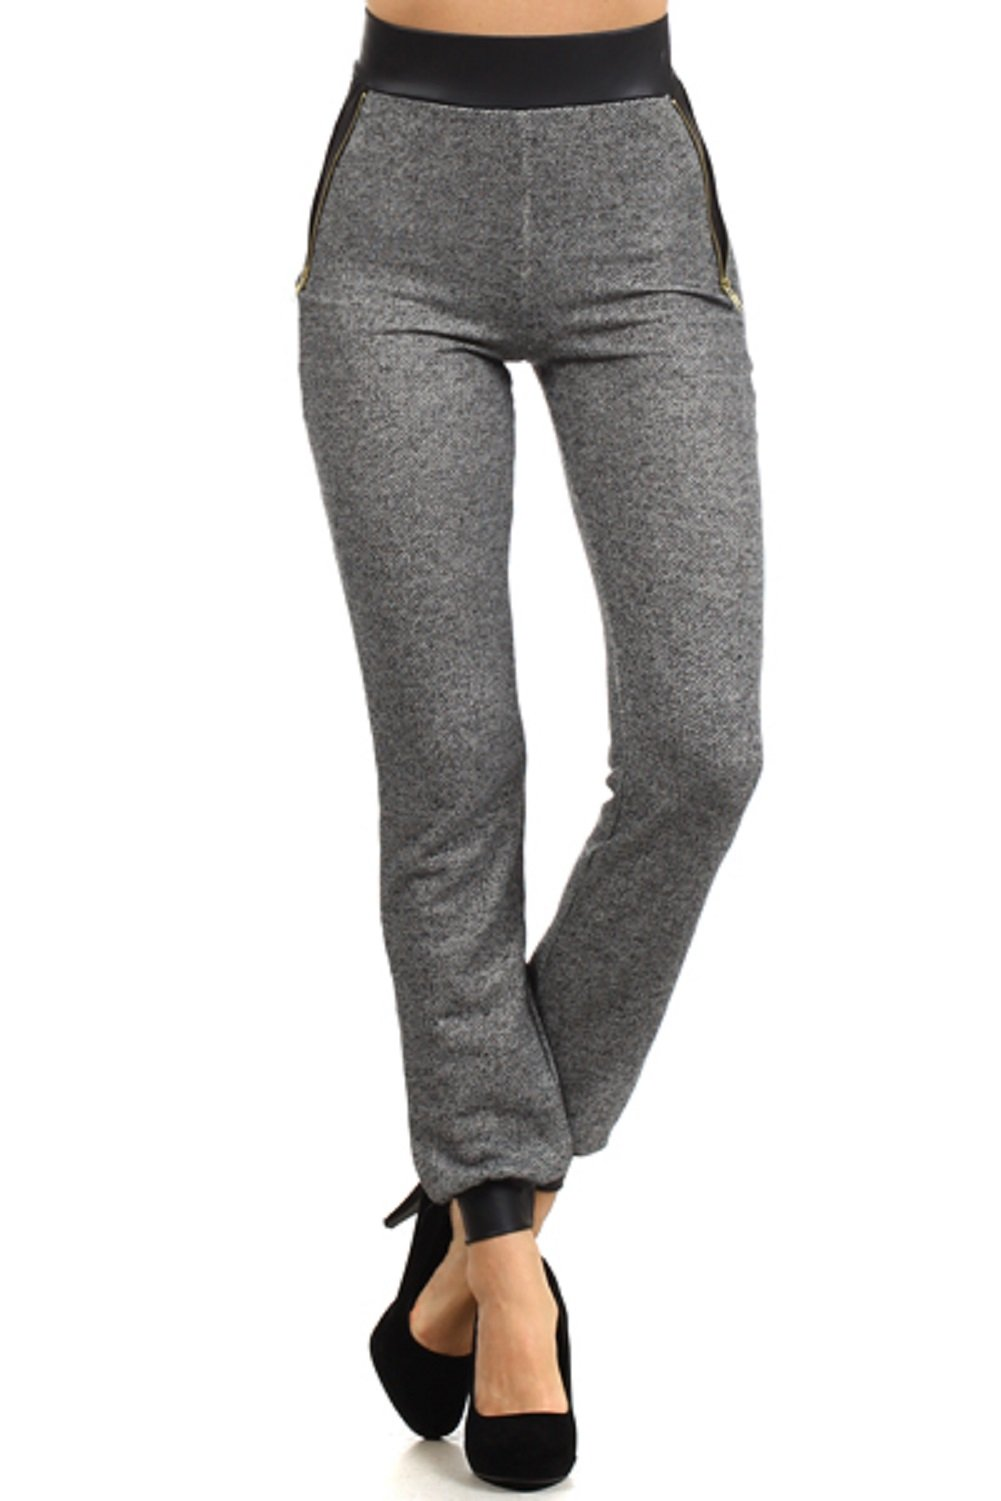 2Chique Boutique Women's Peppered Knit Cuffed High Waisted Sweatpants with Zipper Detail (small)